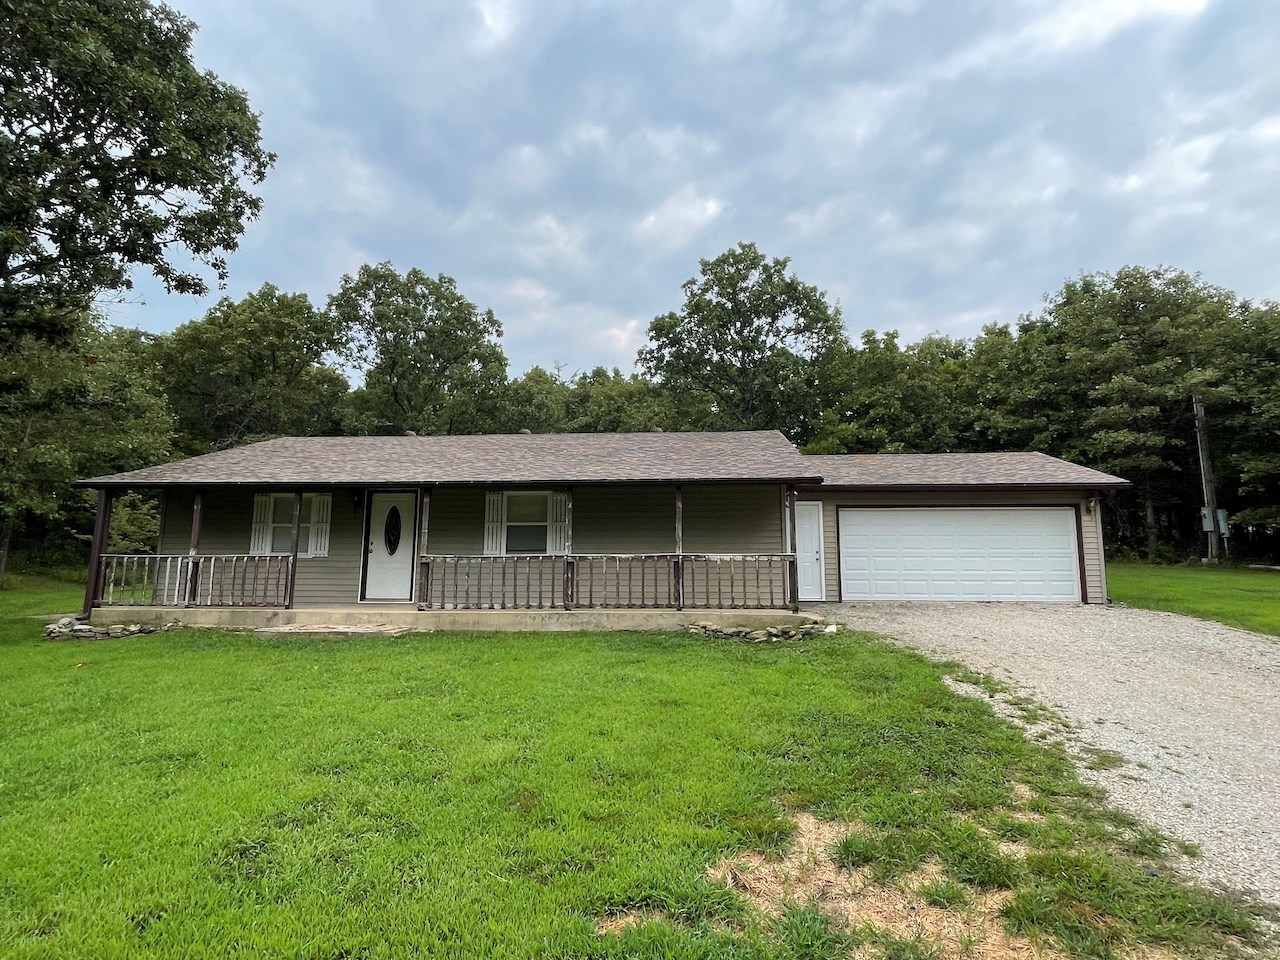 Country Home with Private Setting - West Plains, Missouri